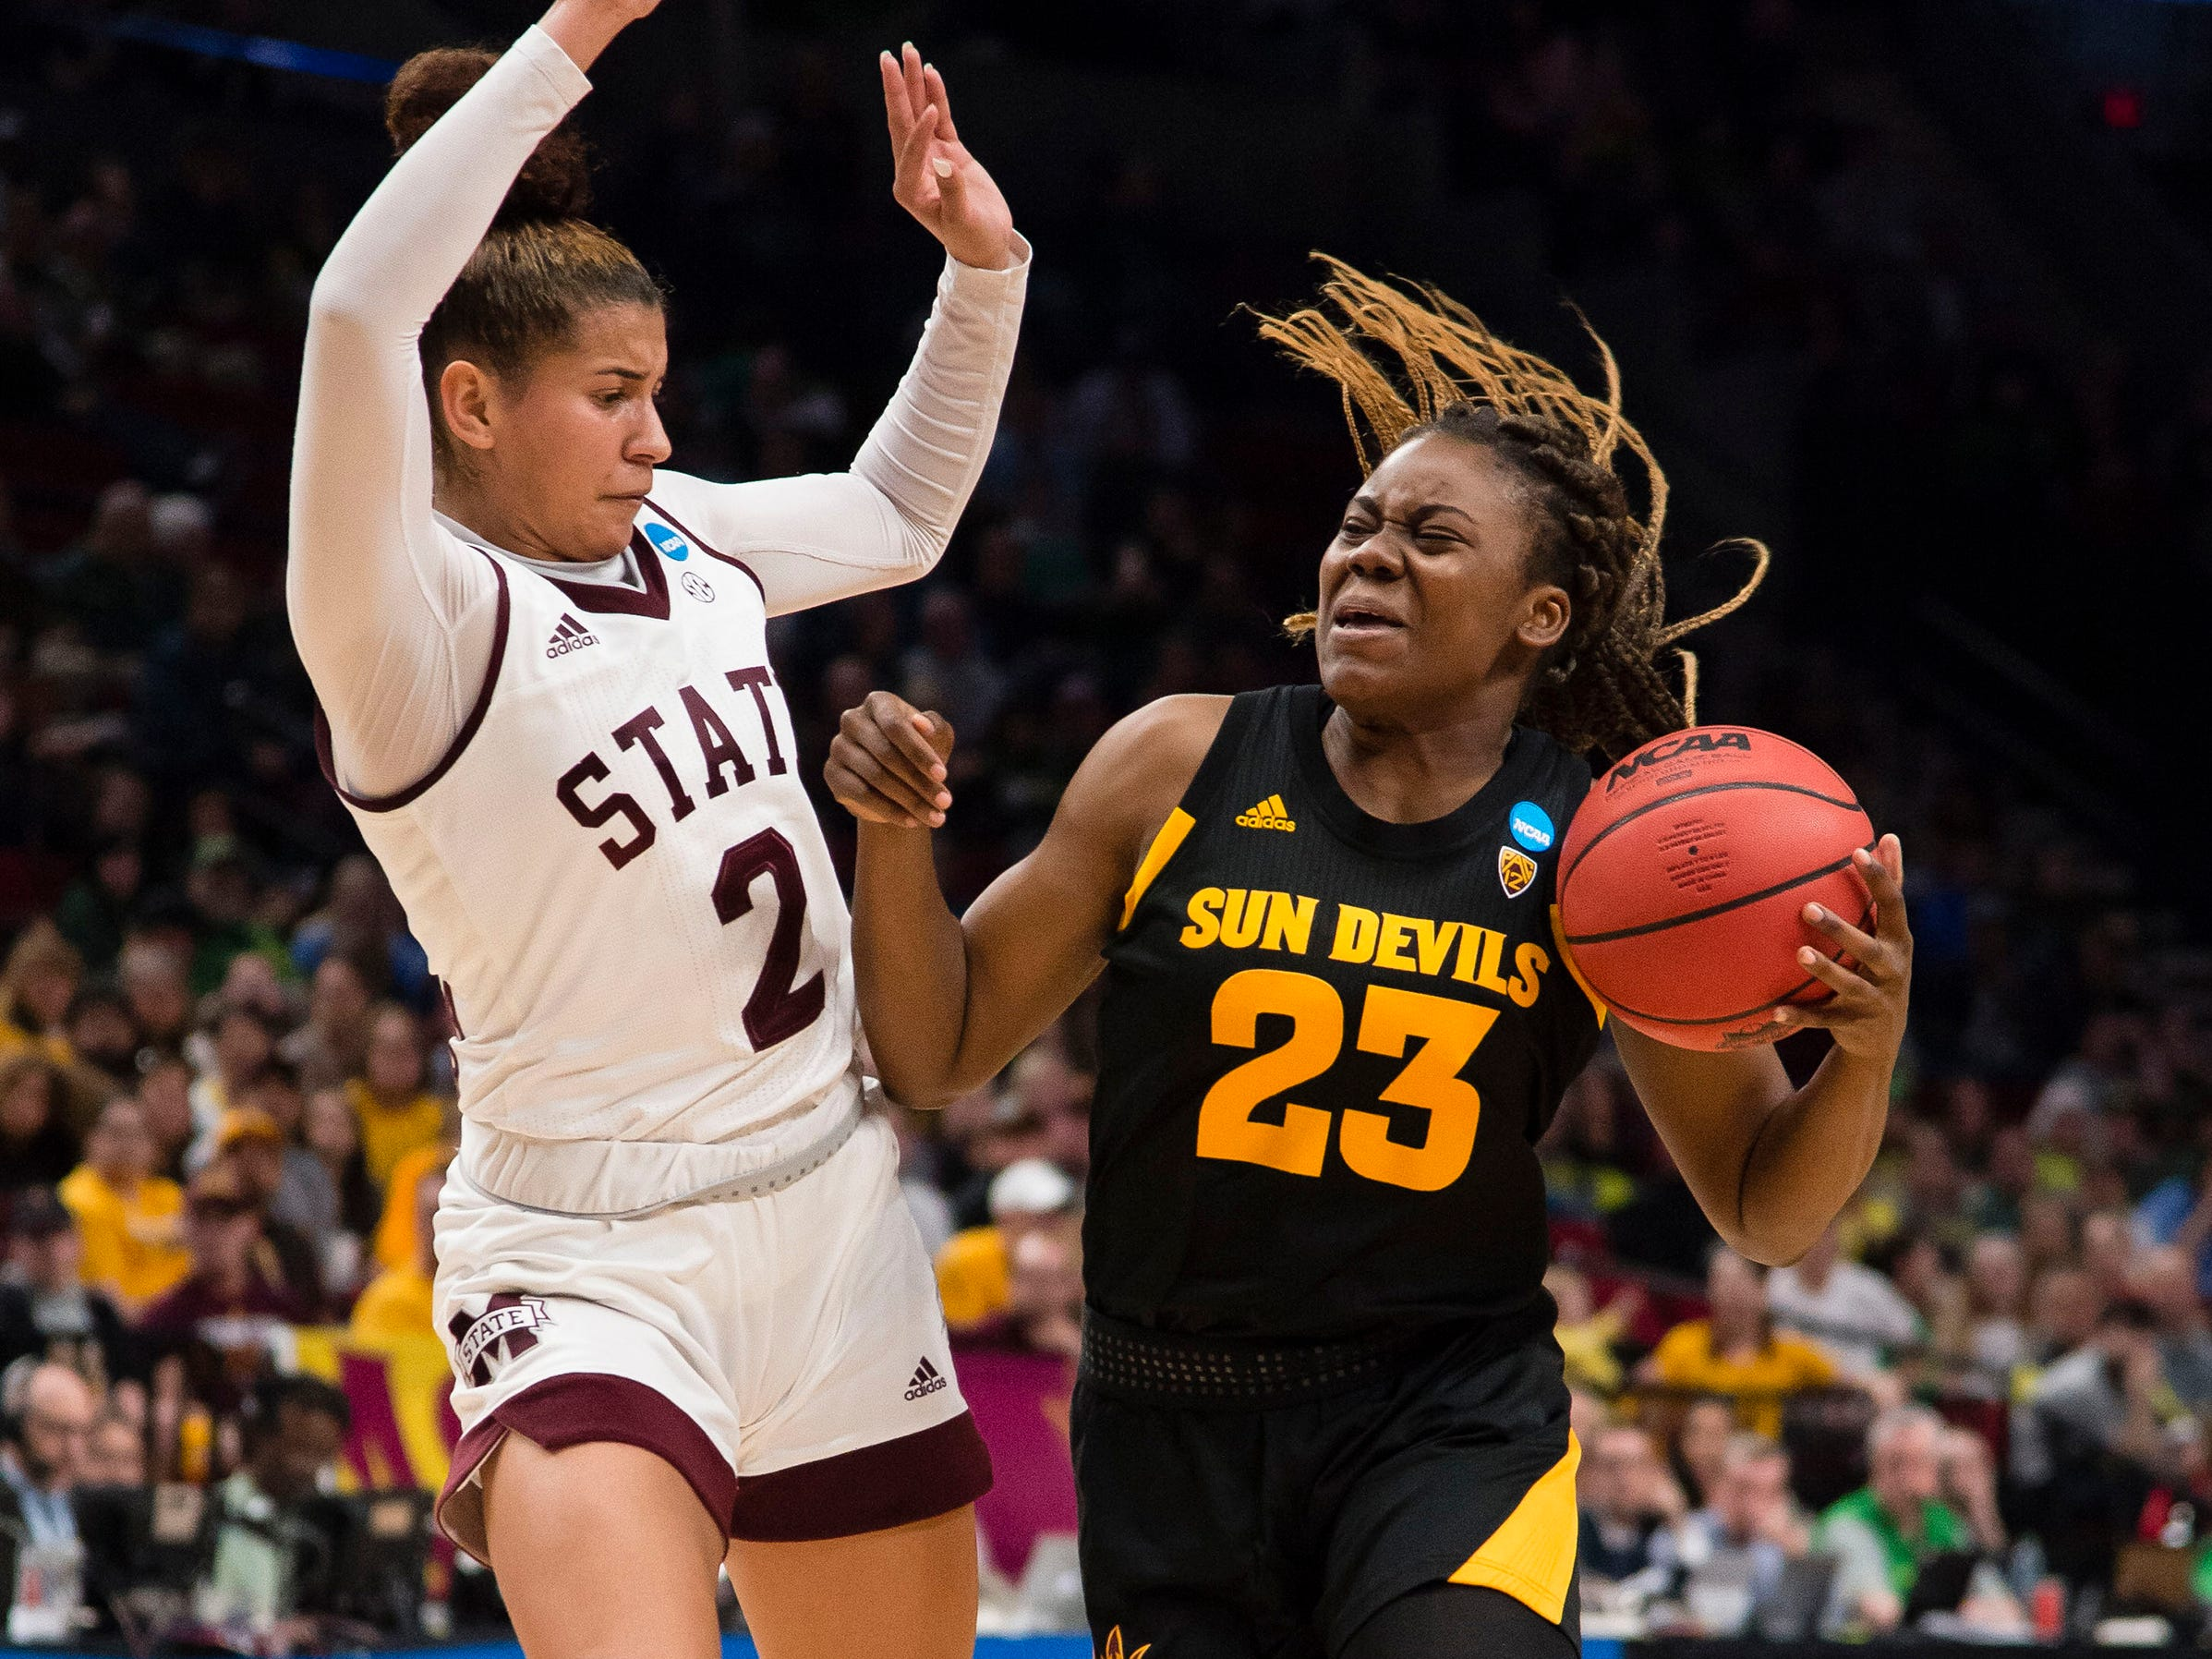 Mar 29, 2019; Portland, OR, USA; Arizona State Sun Devils guard Iris Mbulito (23) drives to the basket against Mississippi State Bulldogs guard Andra Espinoza-Hunter (2) during the first half in the semifinals of the Portland regional in the women's 2019 NCAA Tournament at Moda Center.